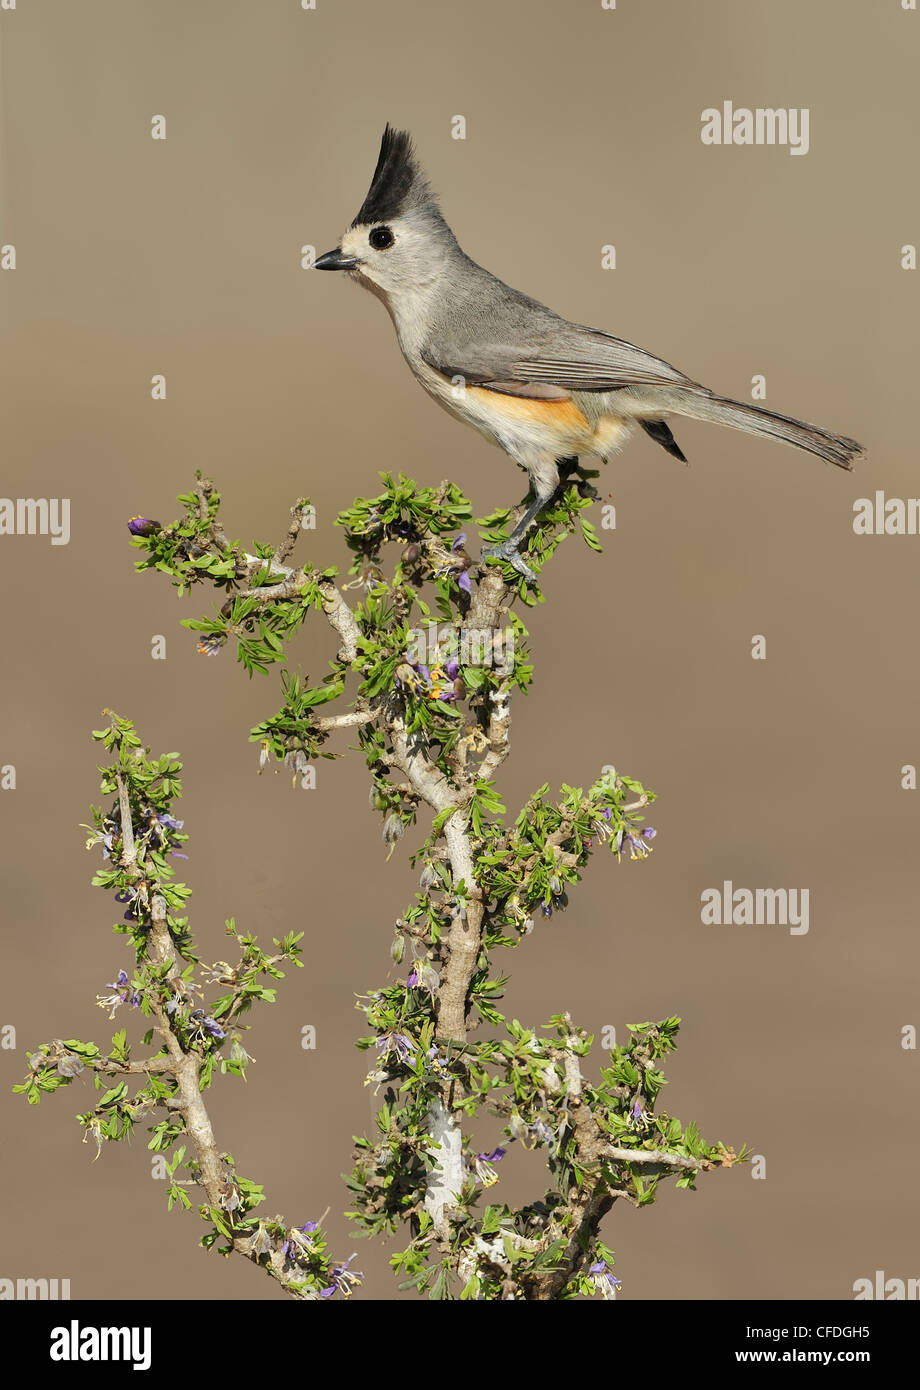 Black-crested Titmouse (Baeolophus atricristatus) - Santa Clara Ranch, Texas, United States of America - Stock Image